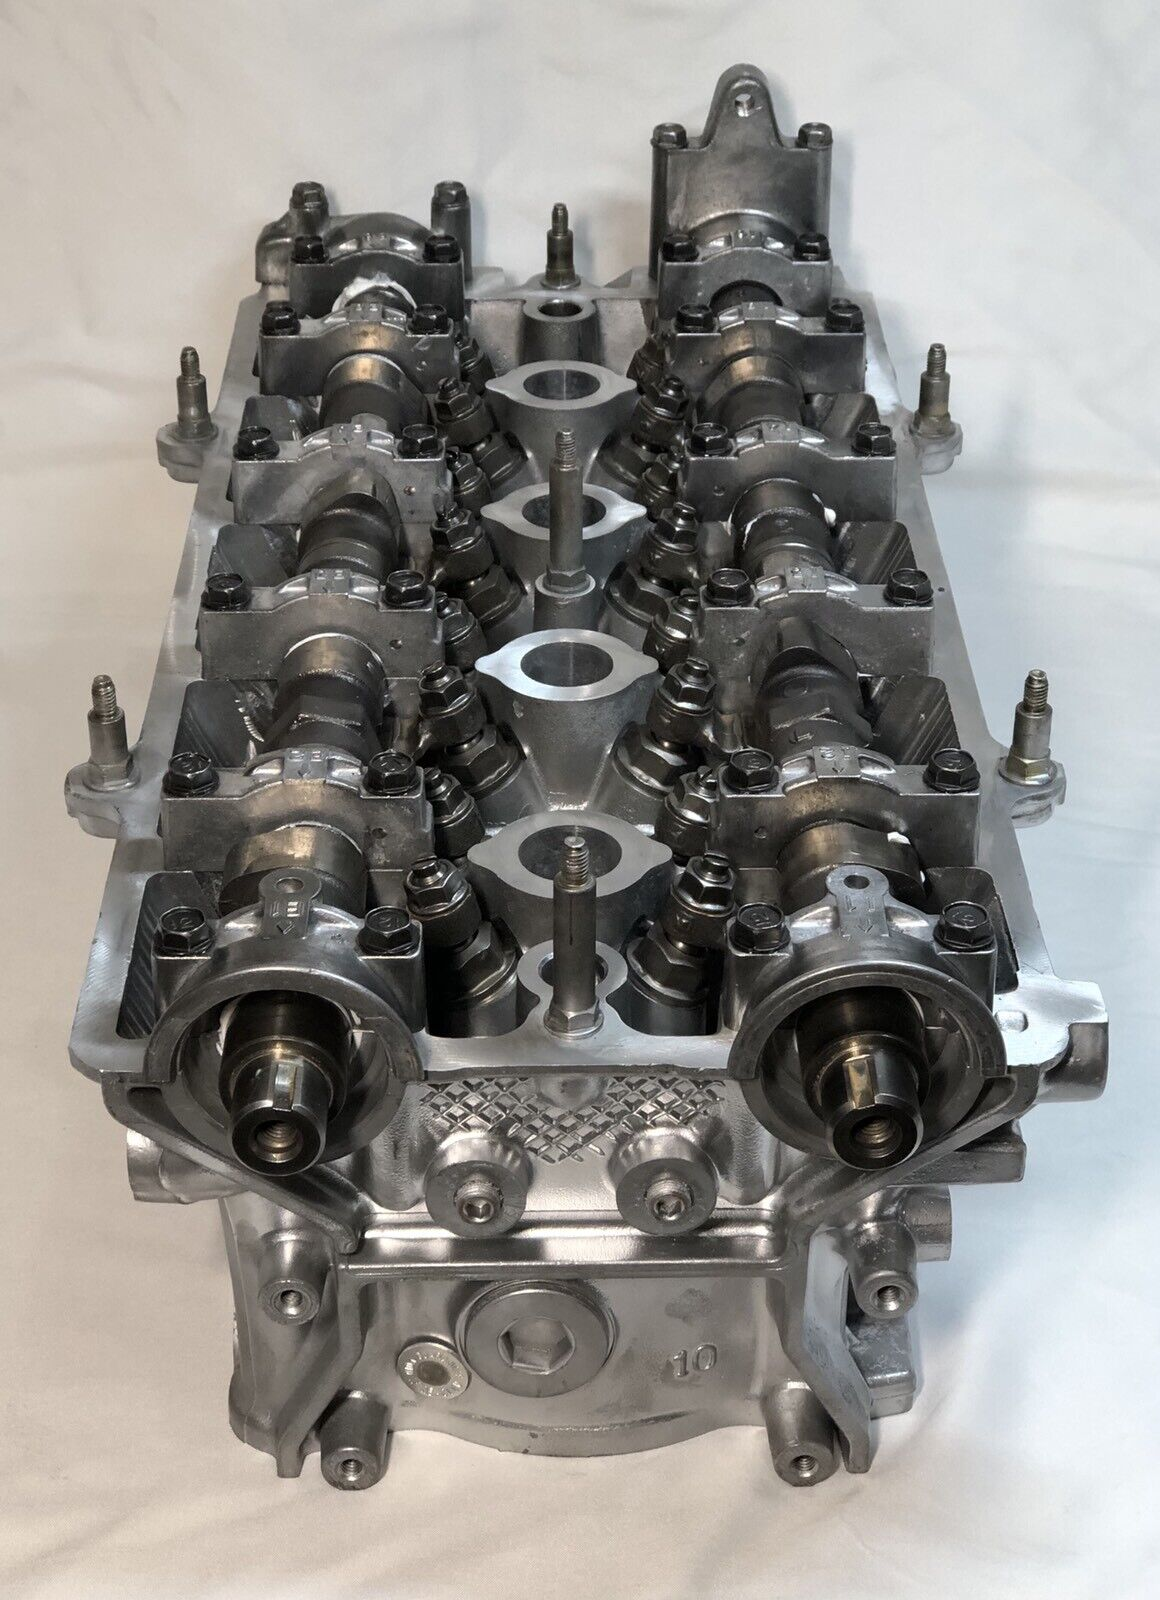 Used Honda Engines and Components for Sale - Page 2